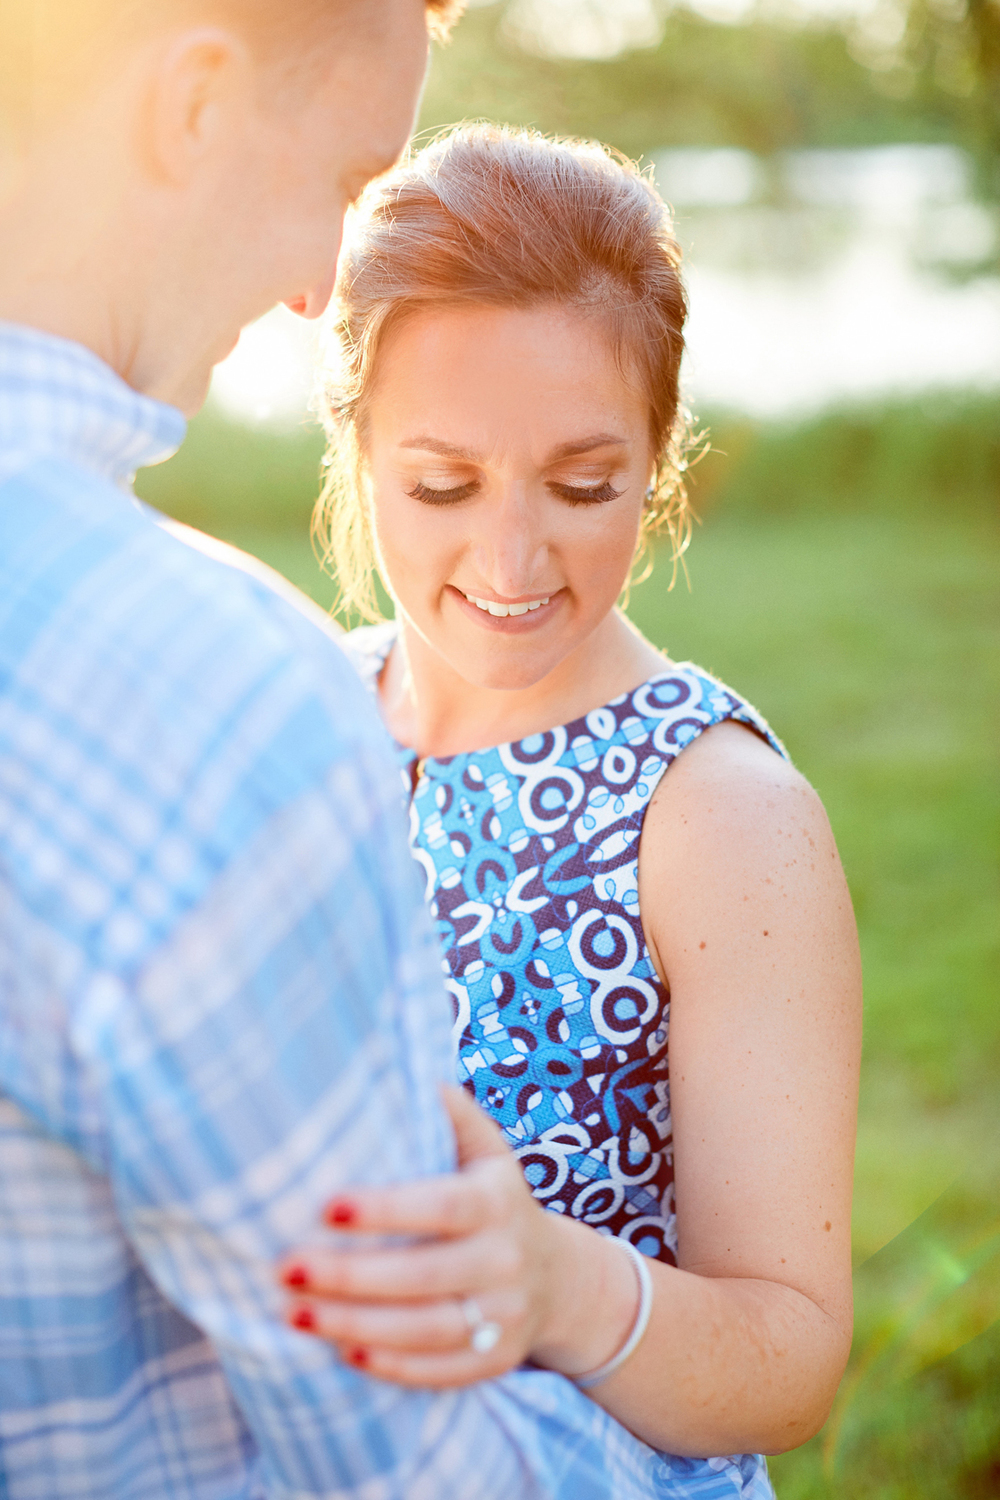 Forest Park St Louis Engagement Session in St Charles County by Oldani Photography St. Louis Wedding Photographers 24.jpg